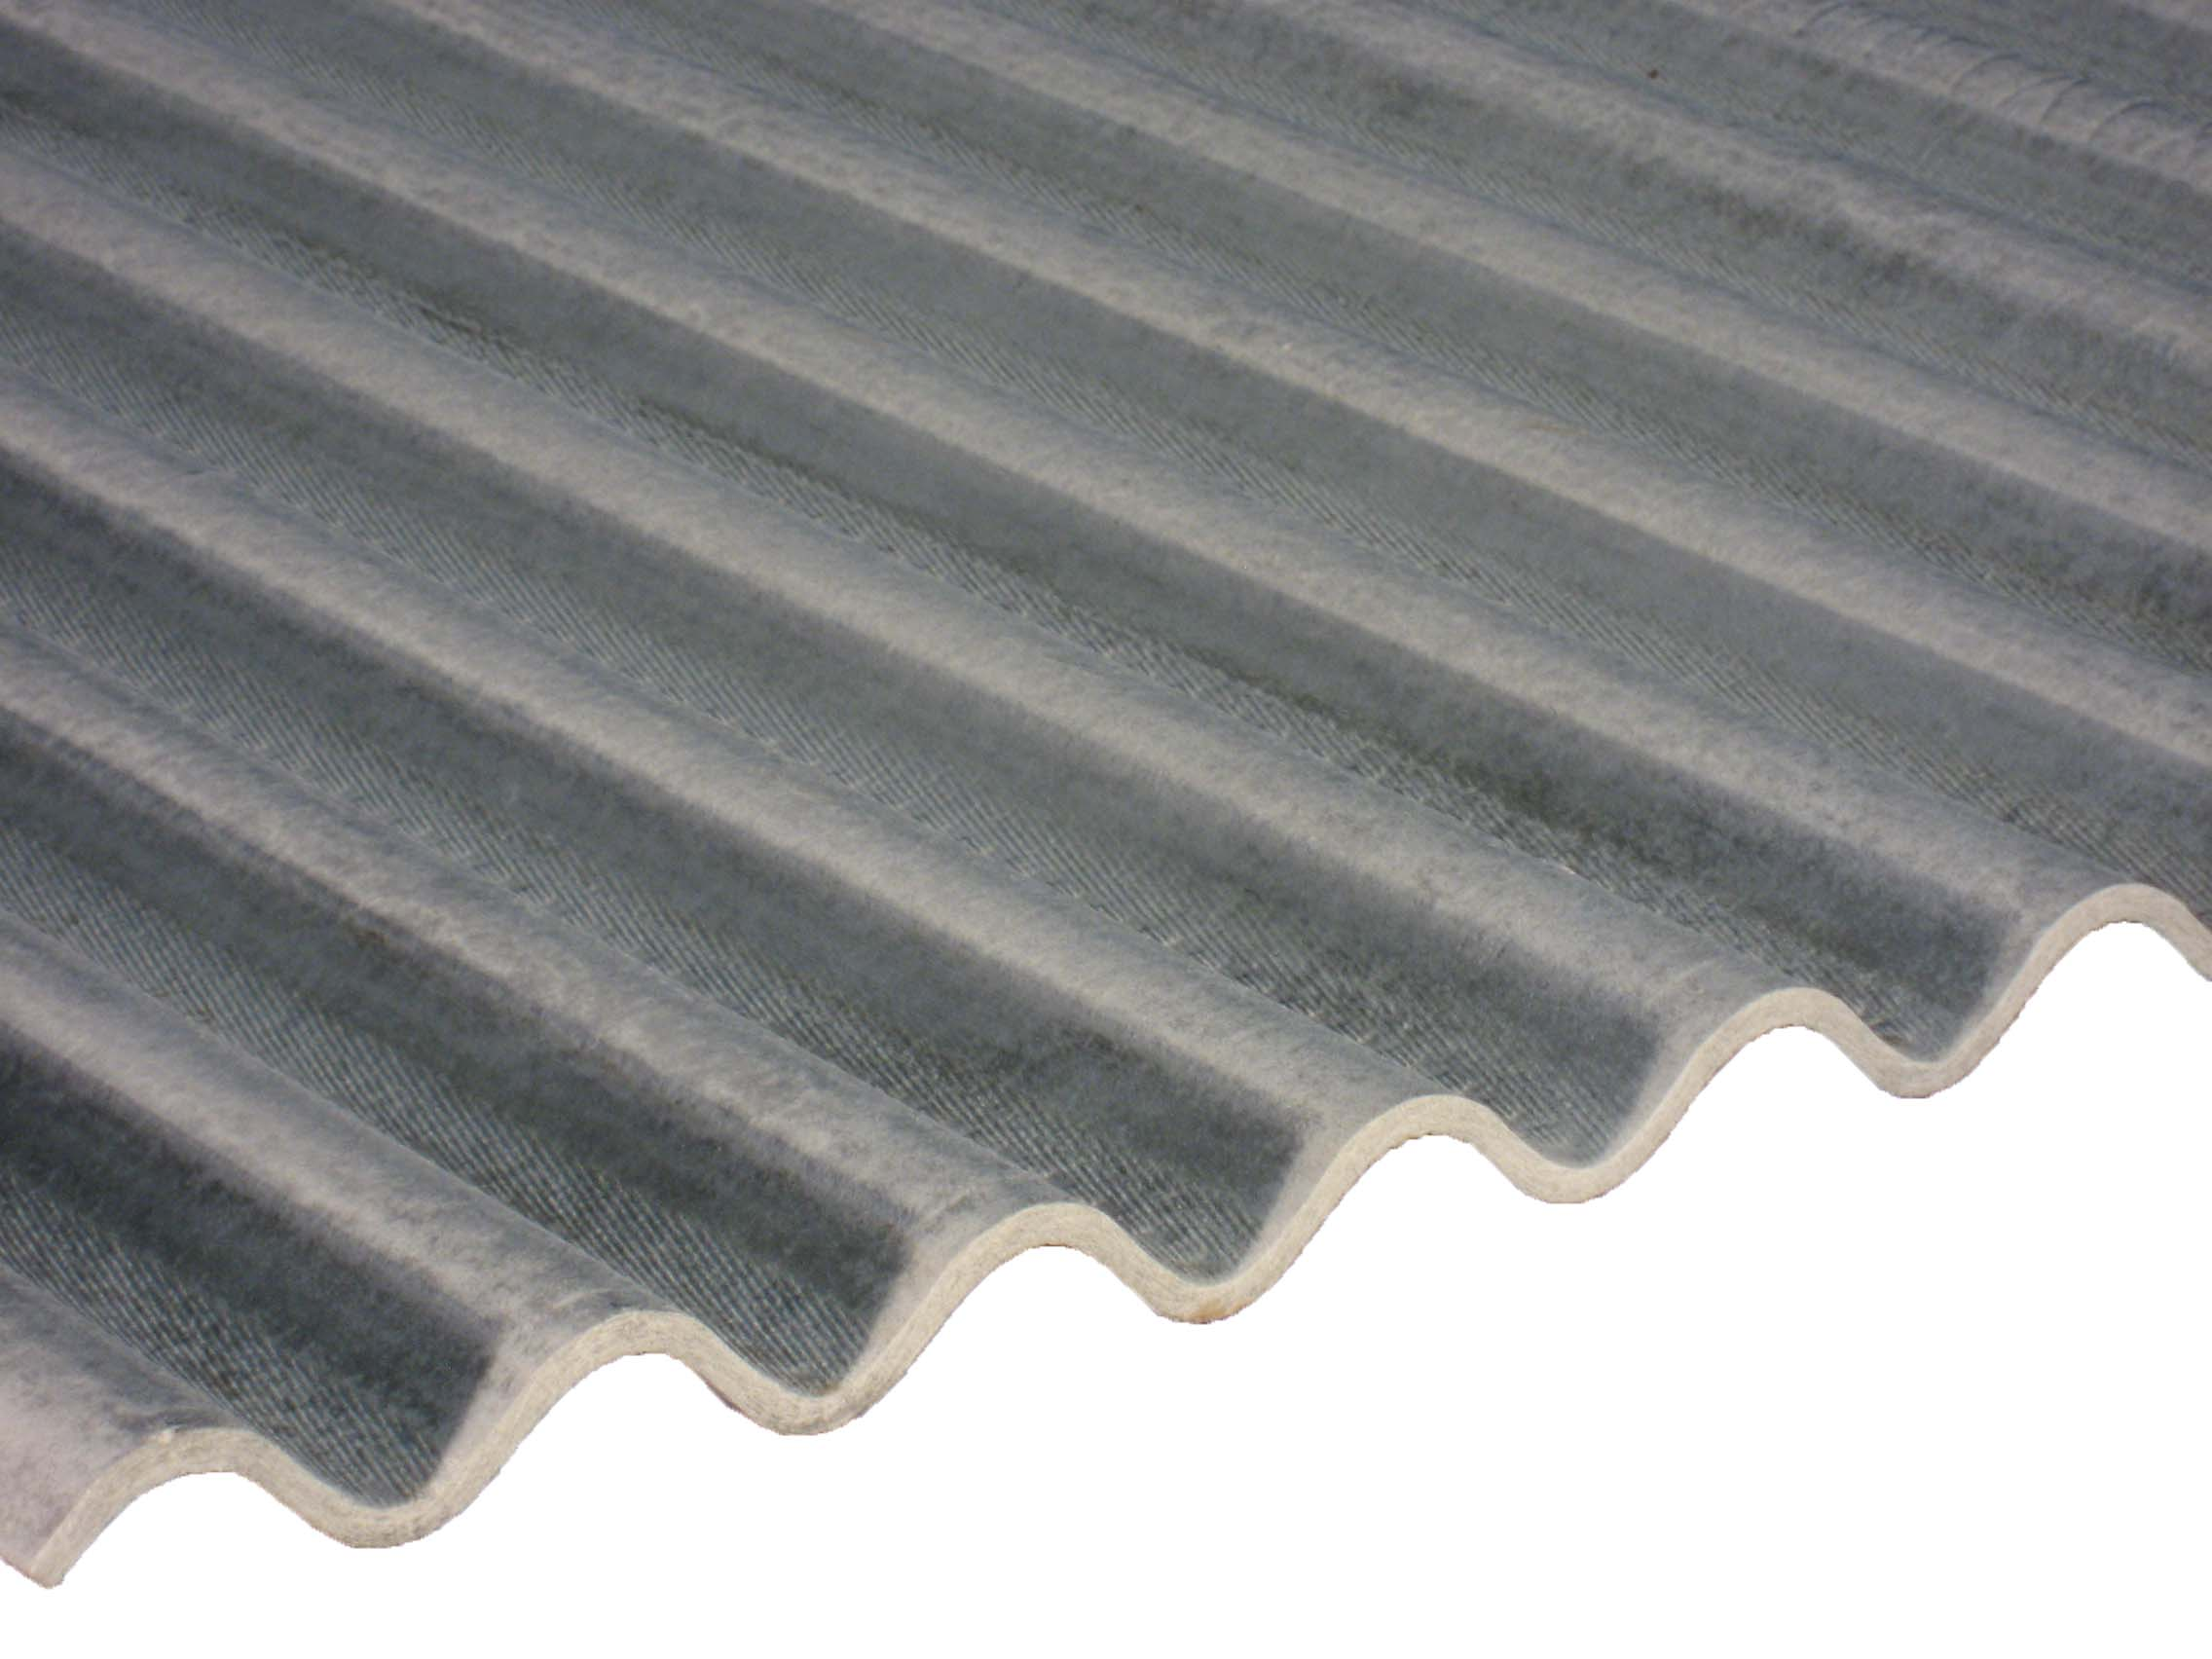 Cement Fibre Roof Sheet Stockport Fencing